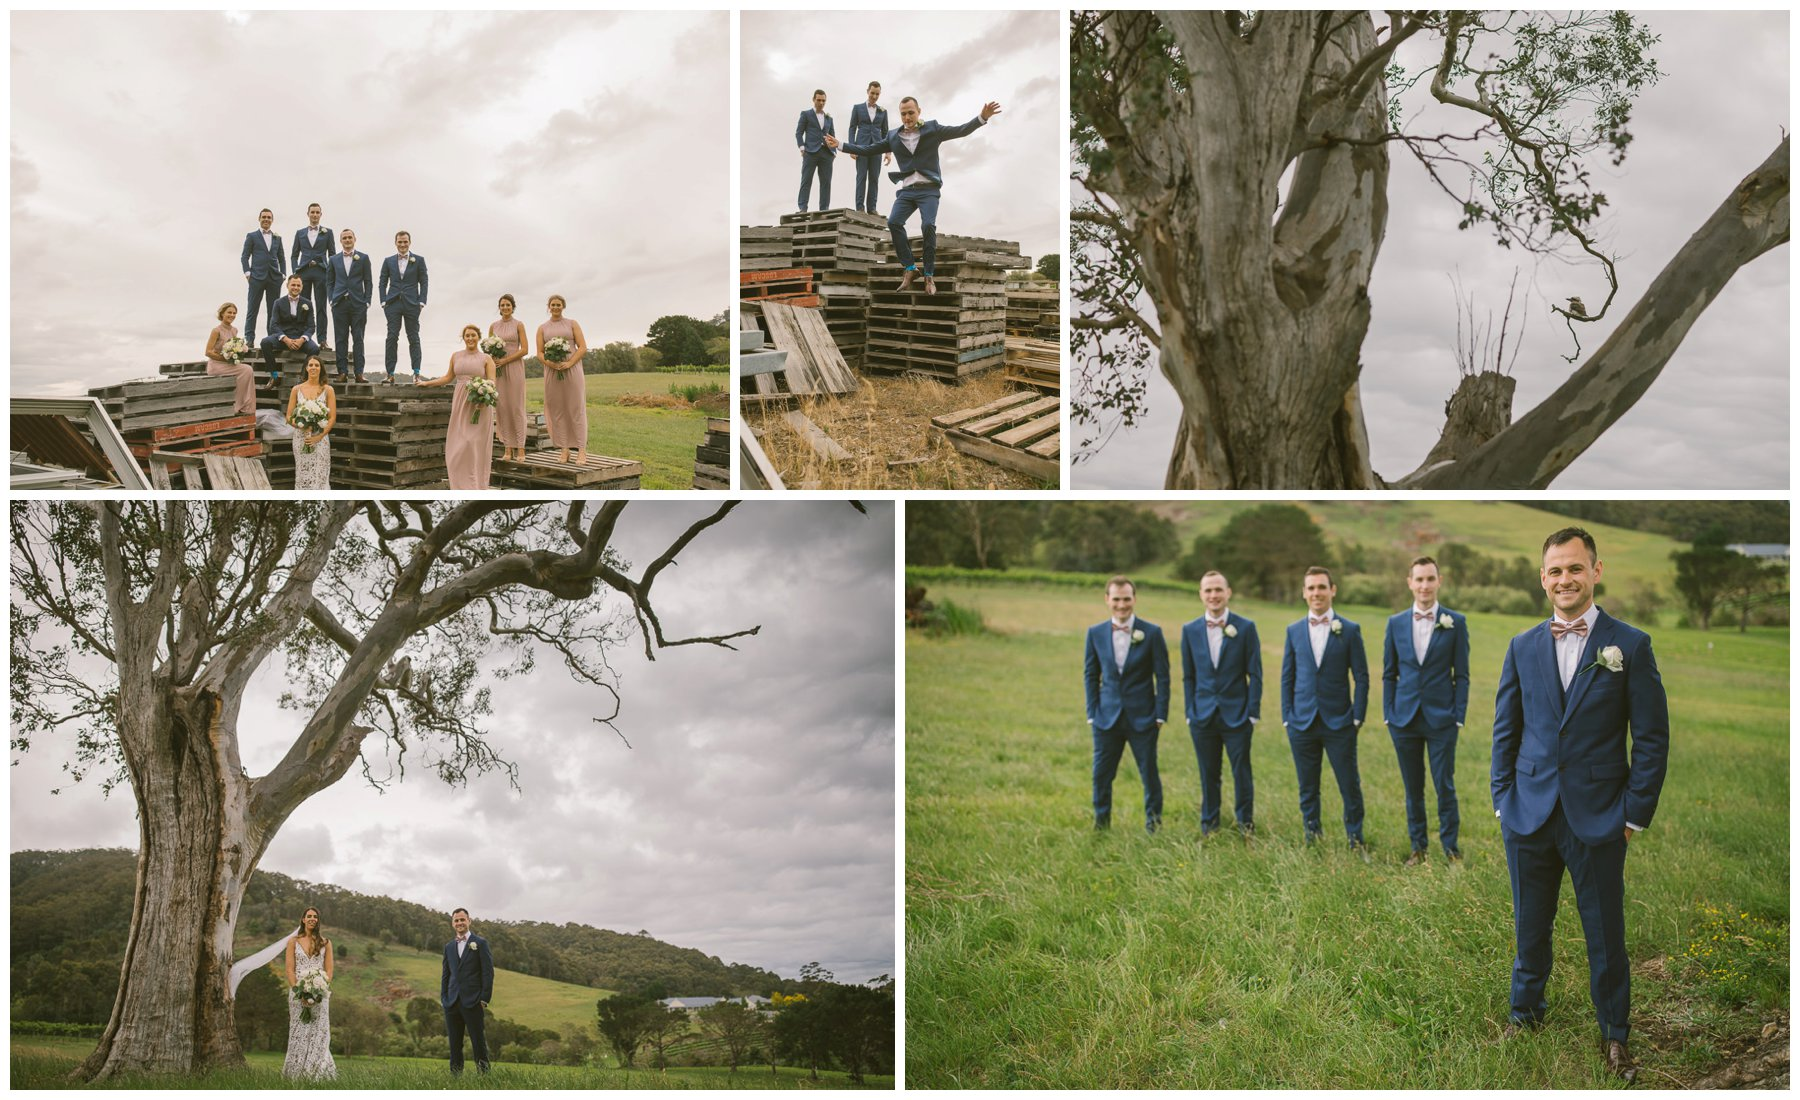 Patrick and Hollie, Coolangatta estate wedding, south coast wedding photographer, Southern Highlands wedding photographer, southern highlands photographer, farm wedding, vineyard